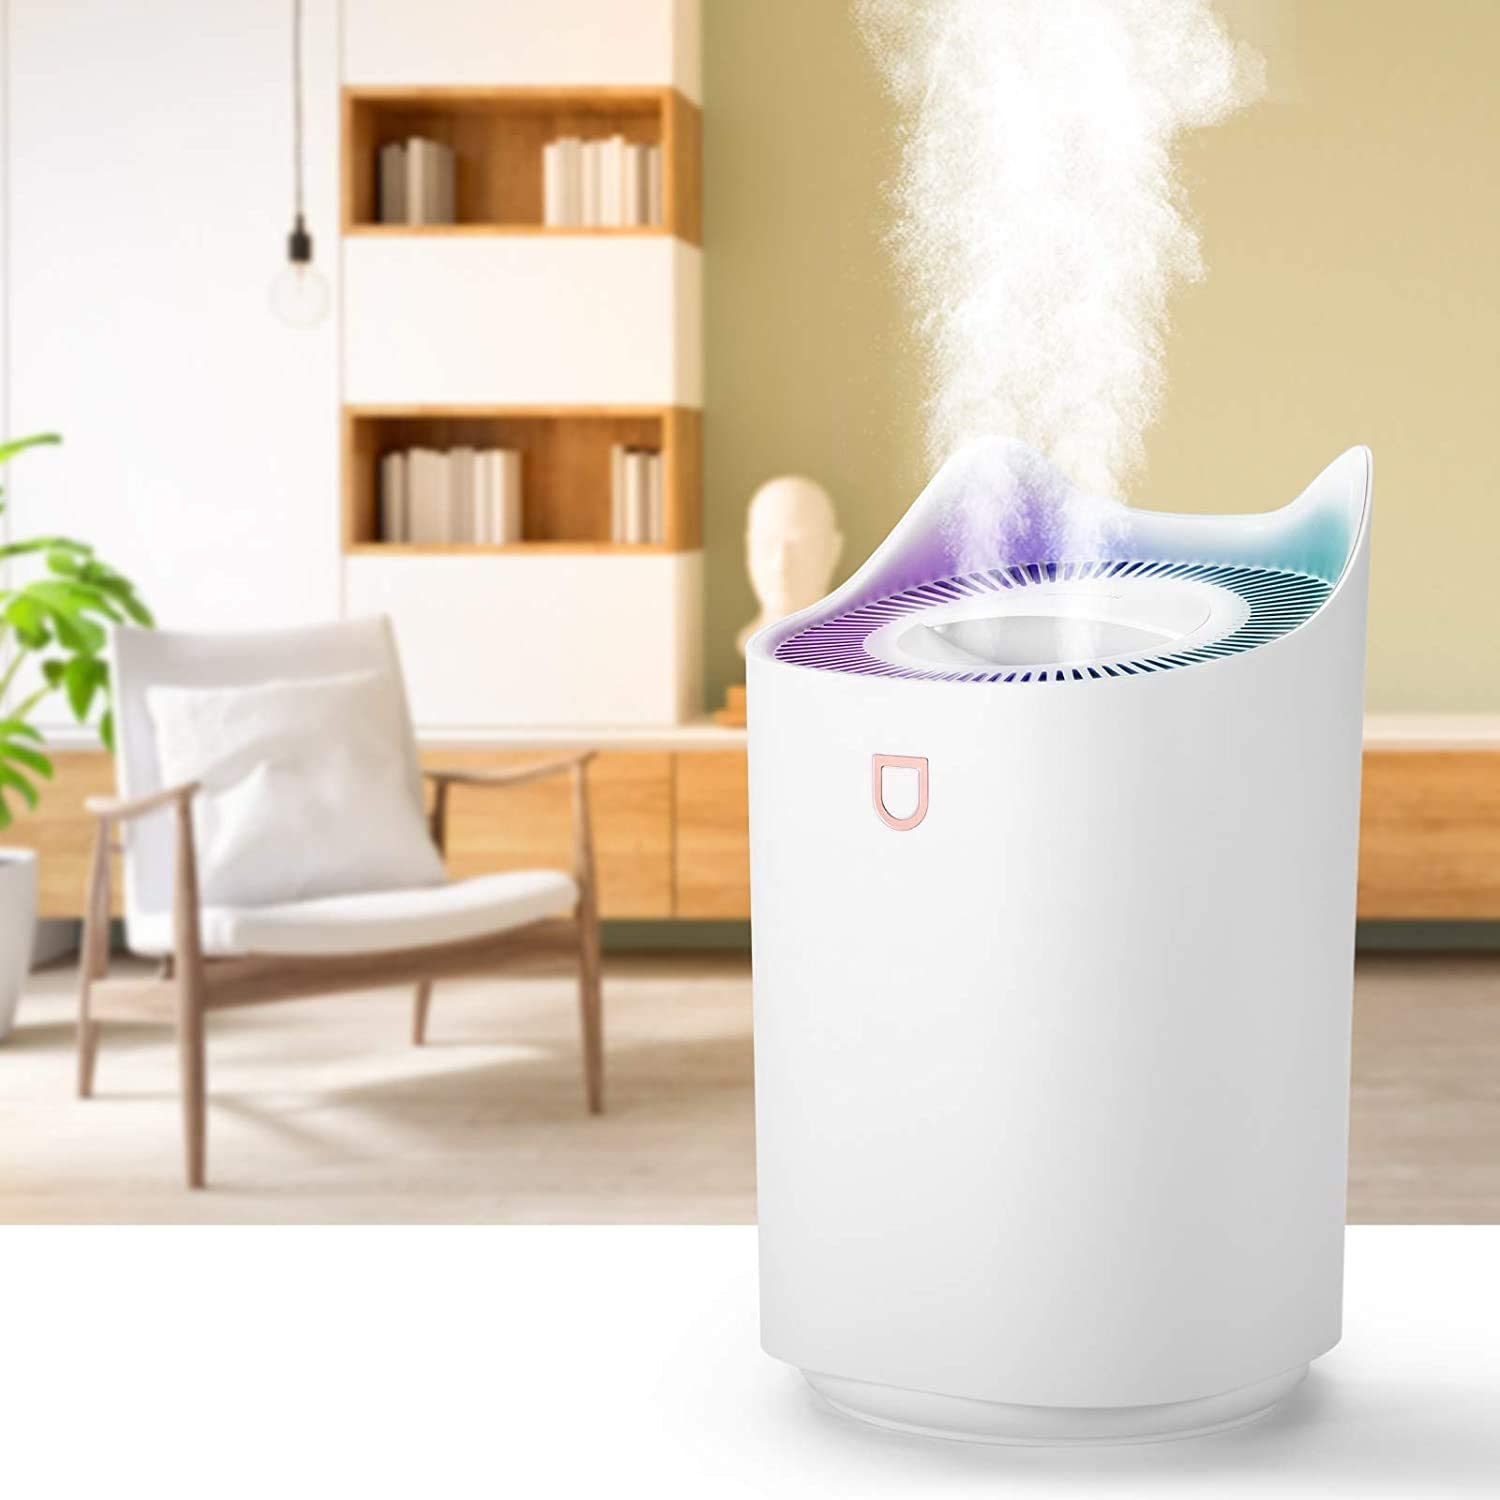 Super Quiet 3 Mist Modes Lasts Up to 30 Hours White GRSTREE 3L Humidifiers for Bedroom,Large Cool Mist Humidifier,Air Humidifier Baby Humidifier for Office,Home Auto Shut-Off